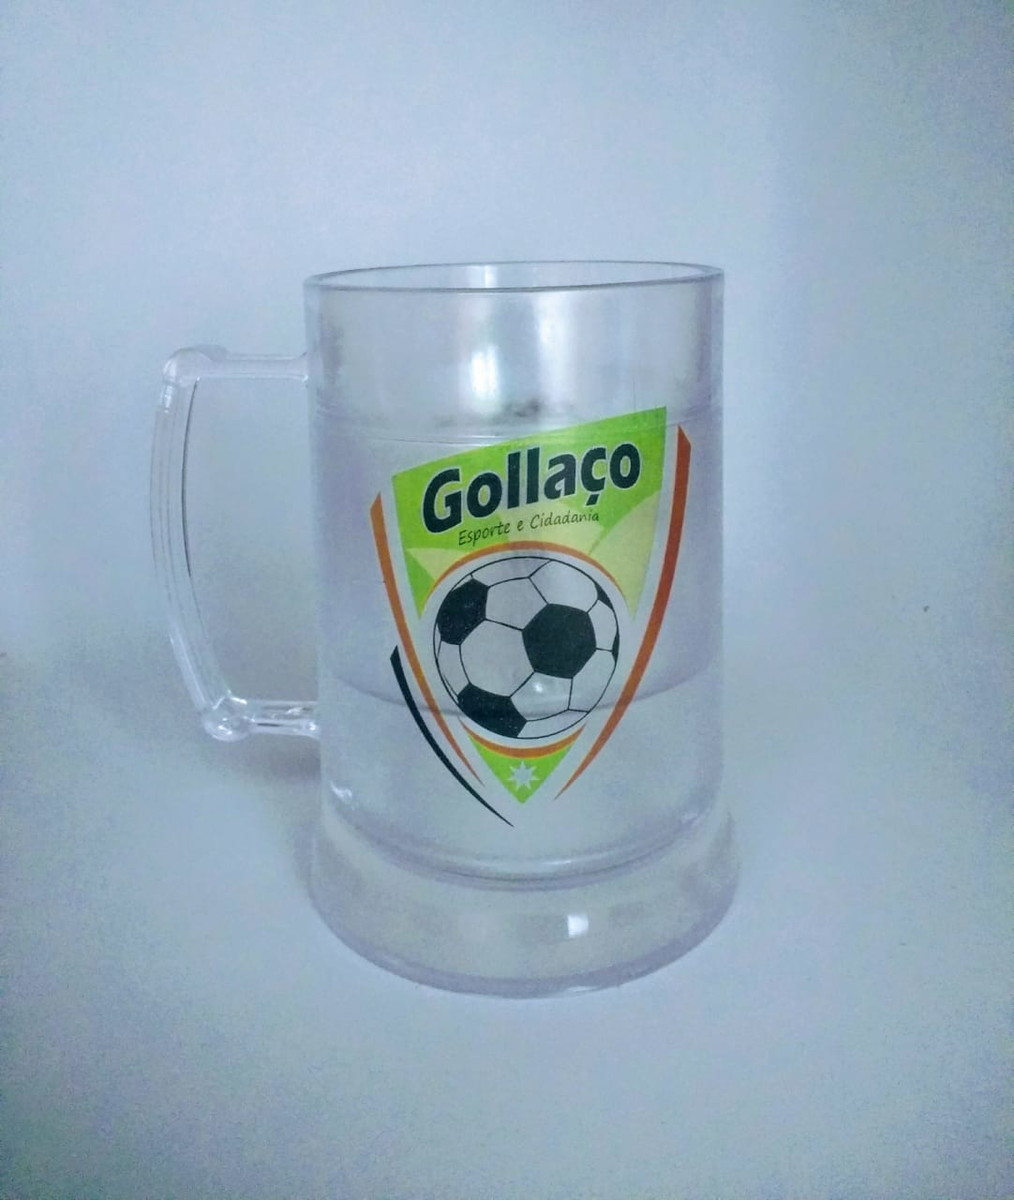 43de7254a Caneca de gel congelante 300 ml Arte colorida - 50 un no Elo7 ...